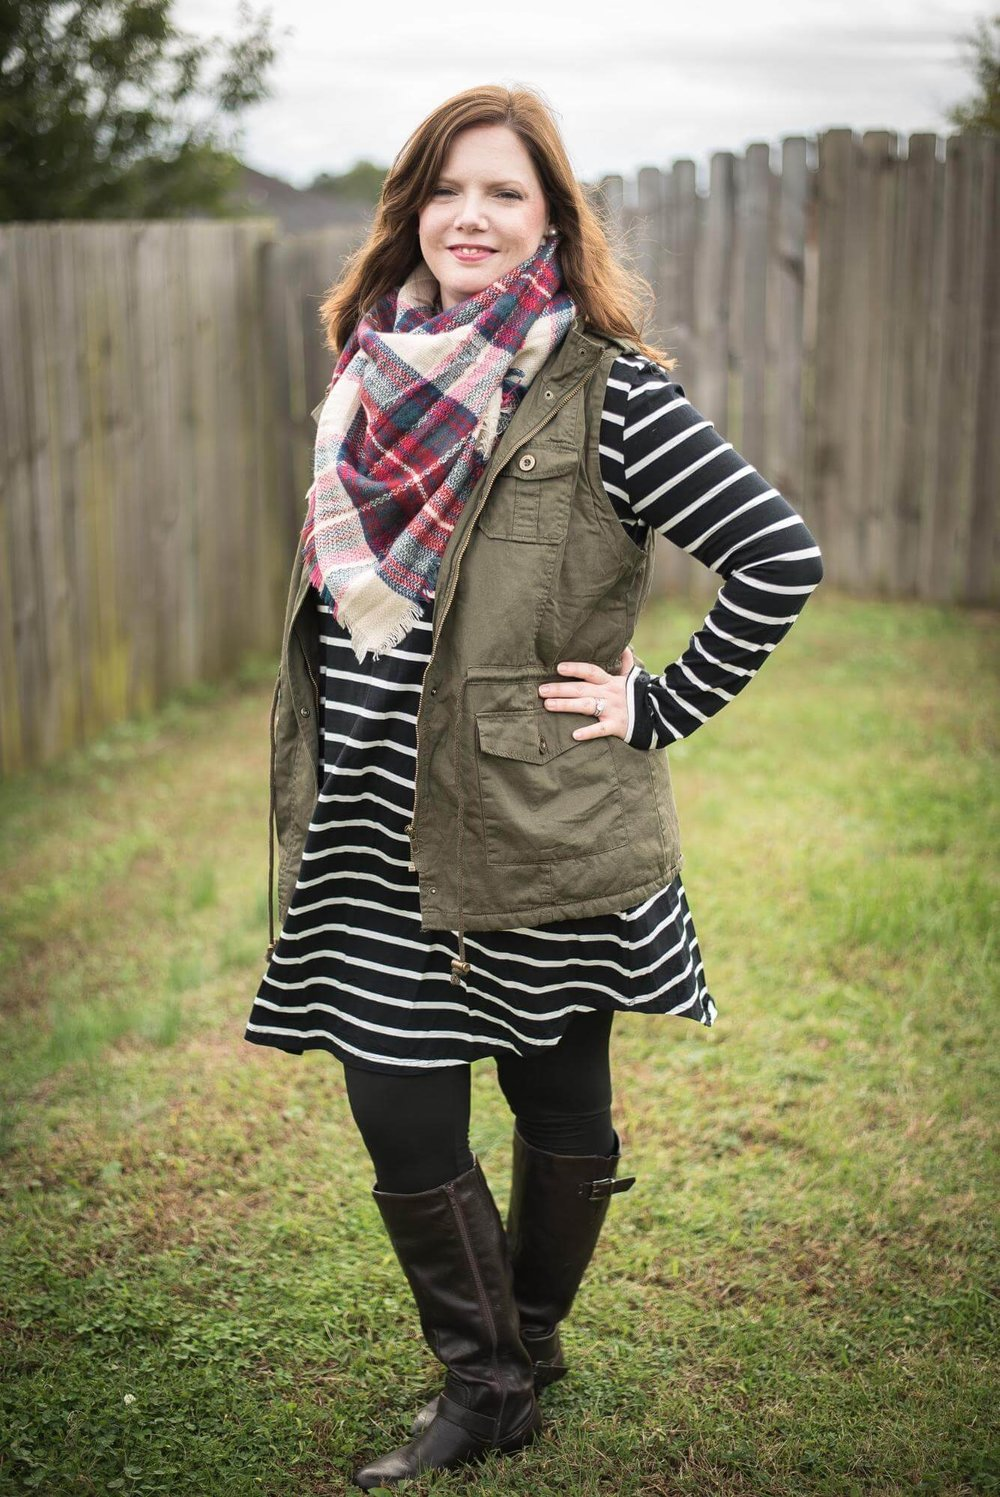 aa1ad87dafe Stripe swing dress + utility vest + plaid scarf + leggings + boots.